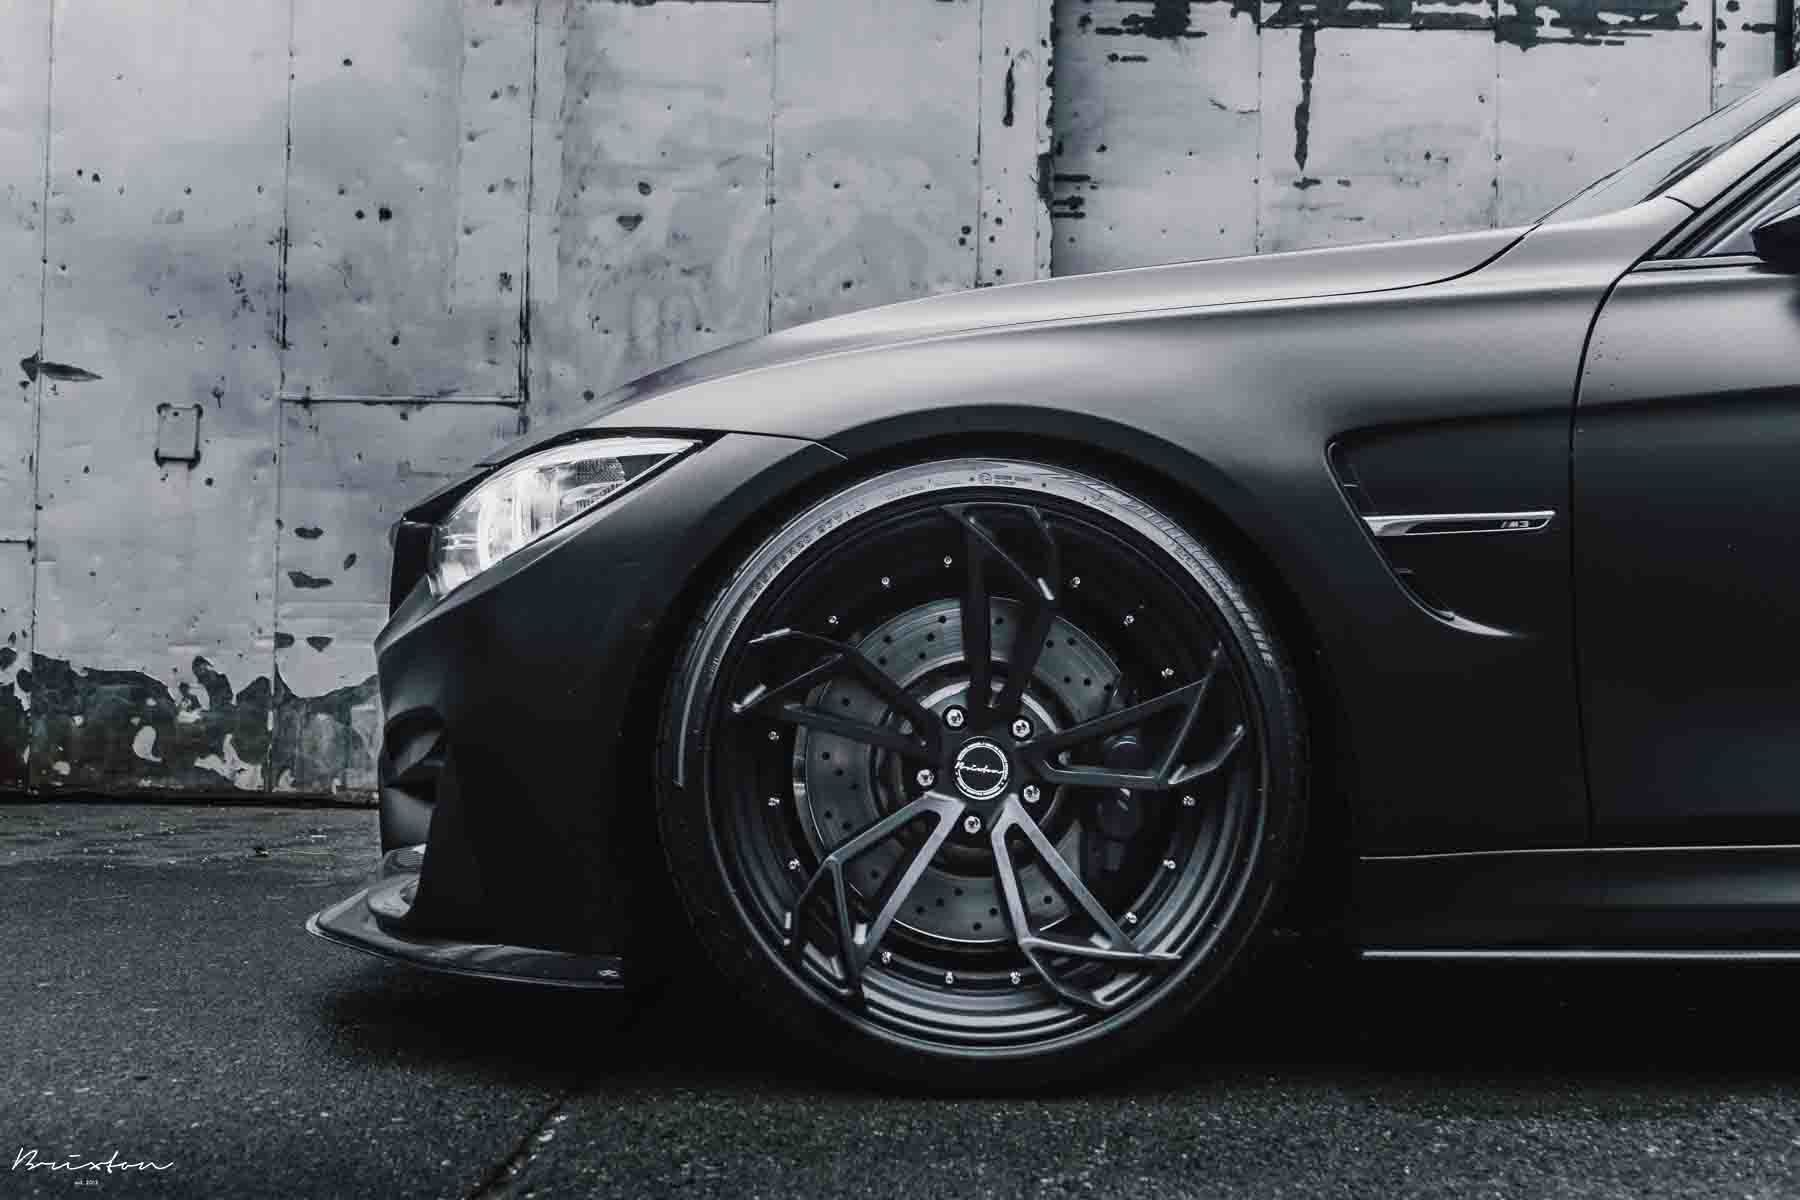 images-products-1-1918-232974206-brixton-forged-black-bmw-f80-m3-brixton-forged-pf1-duo-series-satin-black-concave-wheels-3.jpg